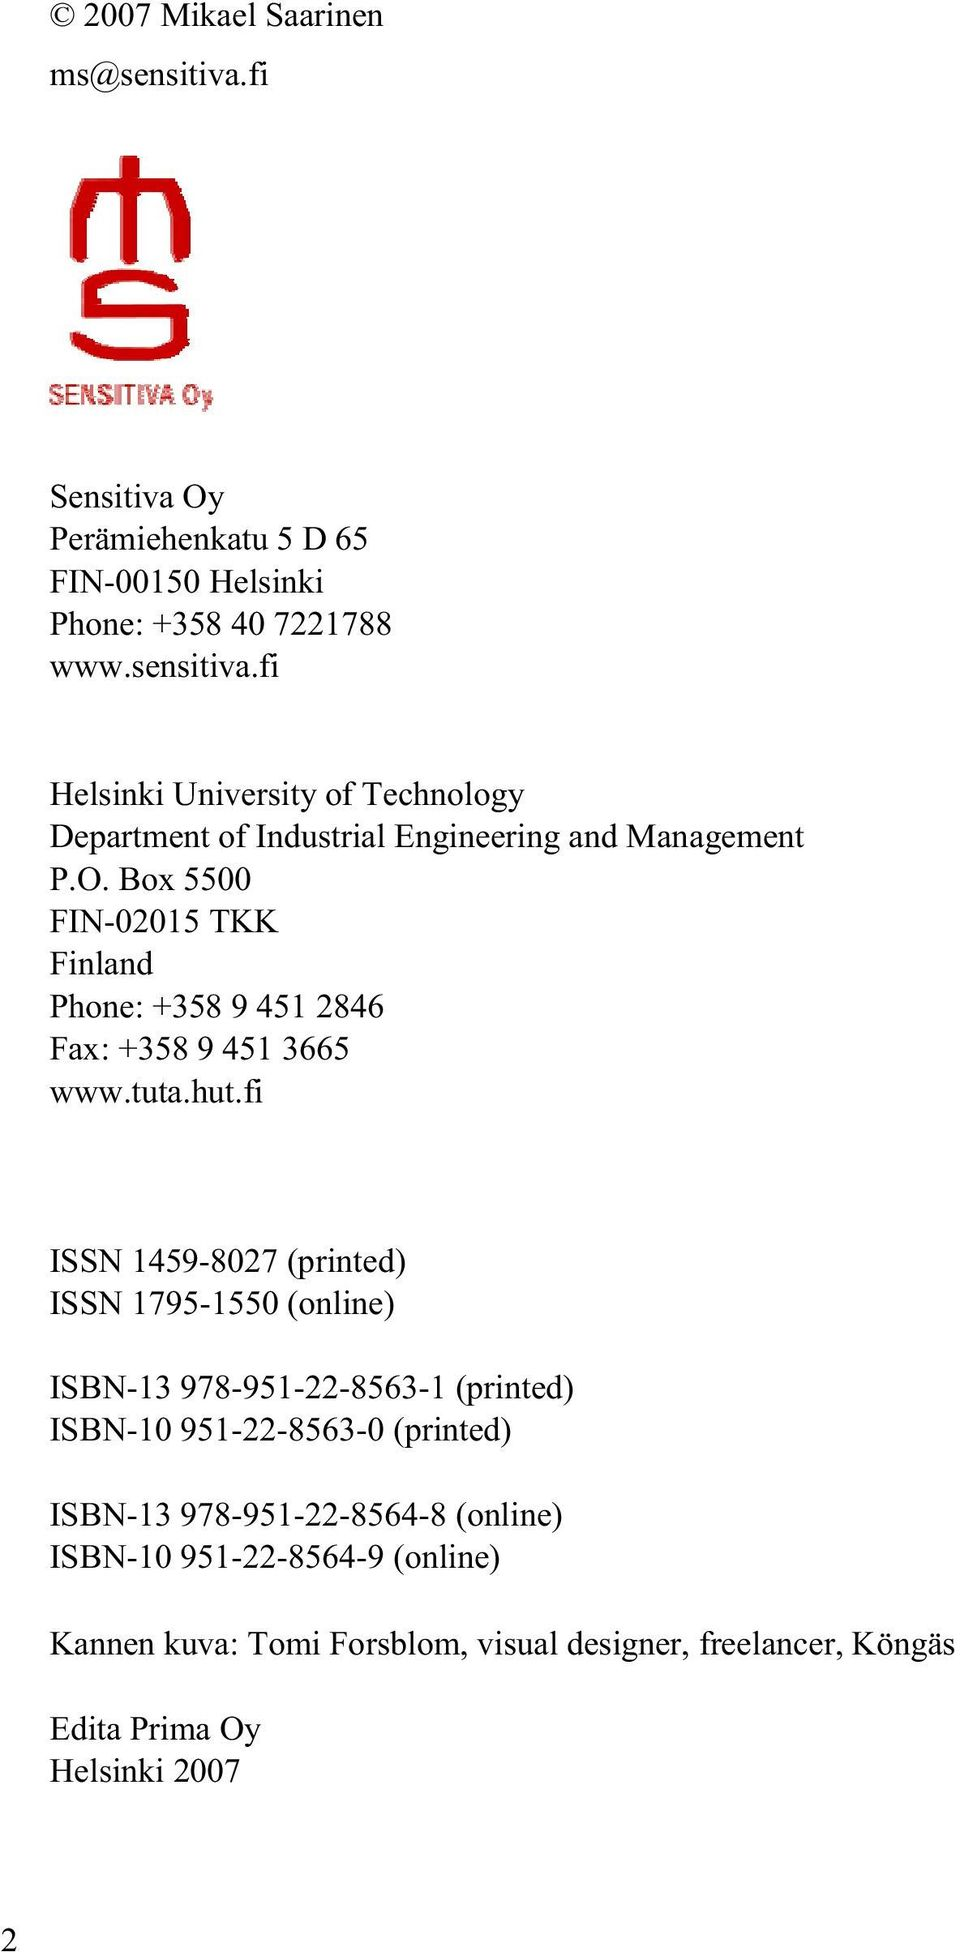 fi ISSN 1459-8027 (printed) ISSN 1795-1550 (online) ISBN-13 978-951-22-8563-1 (printed) ISBN-10 951-22-8563-0 (printed) ISBN-13 978-951-22-8564-8